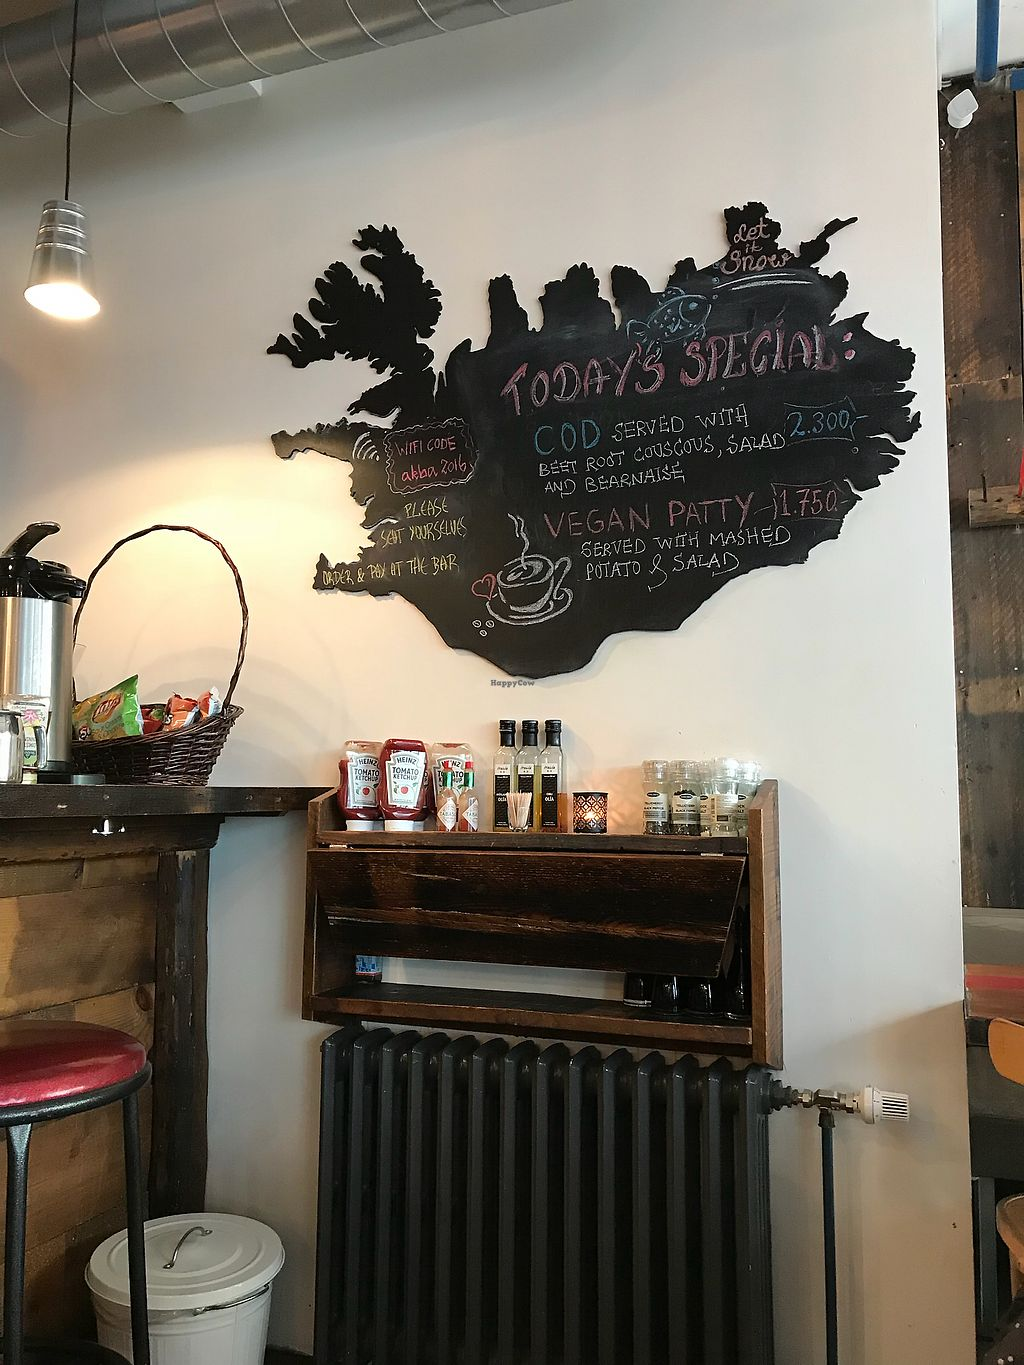 """Photo of Akureyri Backpackers  by <a href=""""/members/profile/docholiday"""">docholiday</a> <br/>Akureyri Backpacker- fine food at reasonable prices and friendly service <br/> March 30, 2018  - <a href='/contact/abuse/image/101568/378270'>Report</a>"""